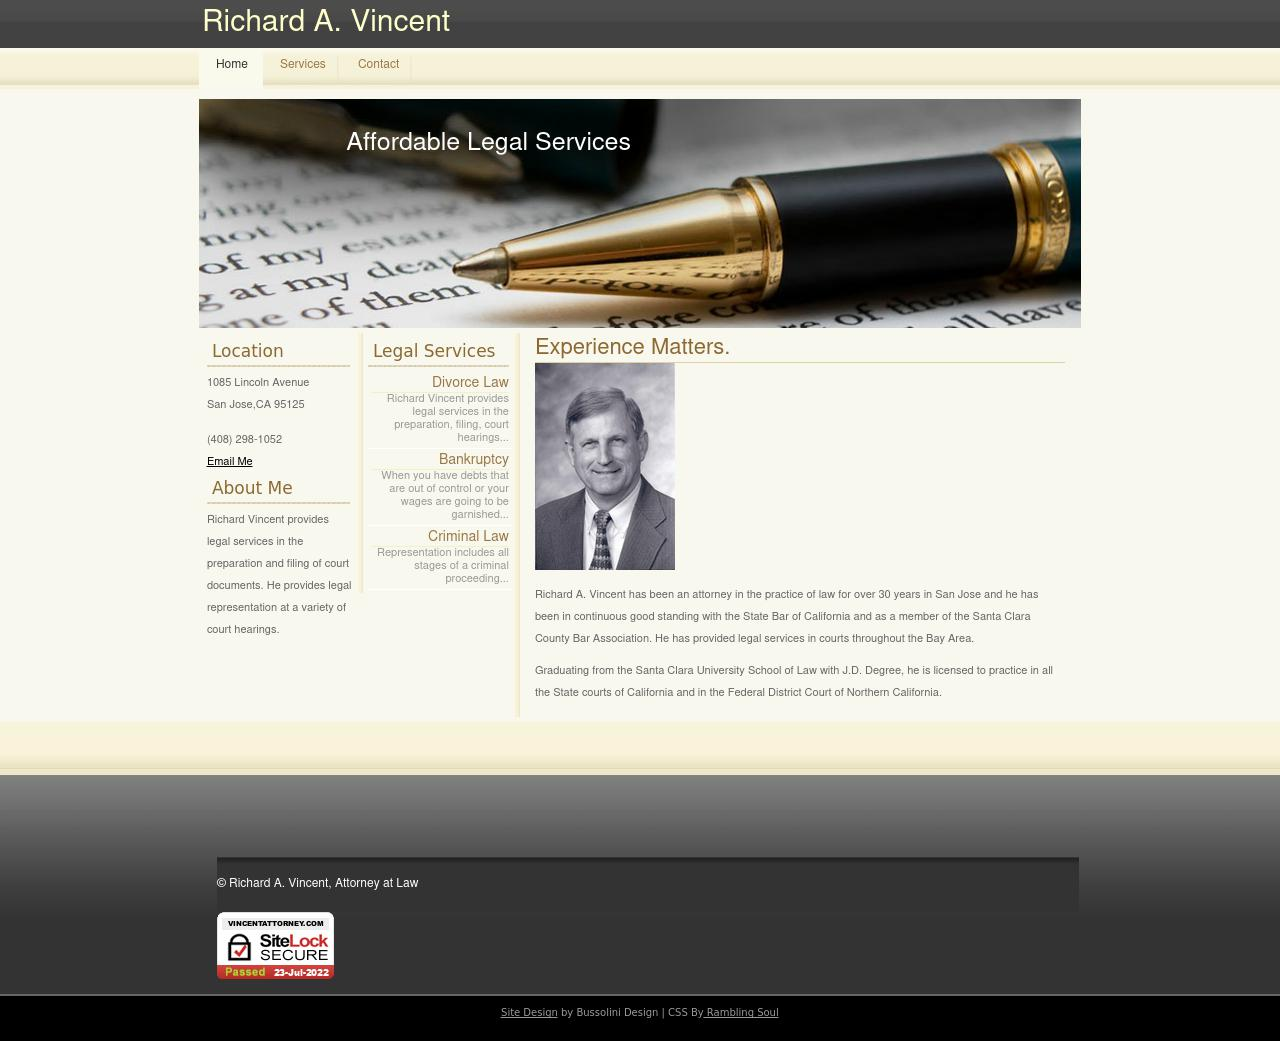 RICHARD VINCENT ATTORNEY AT LAW - San Jose CA Lawyers